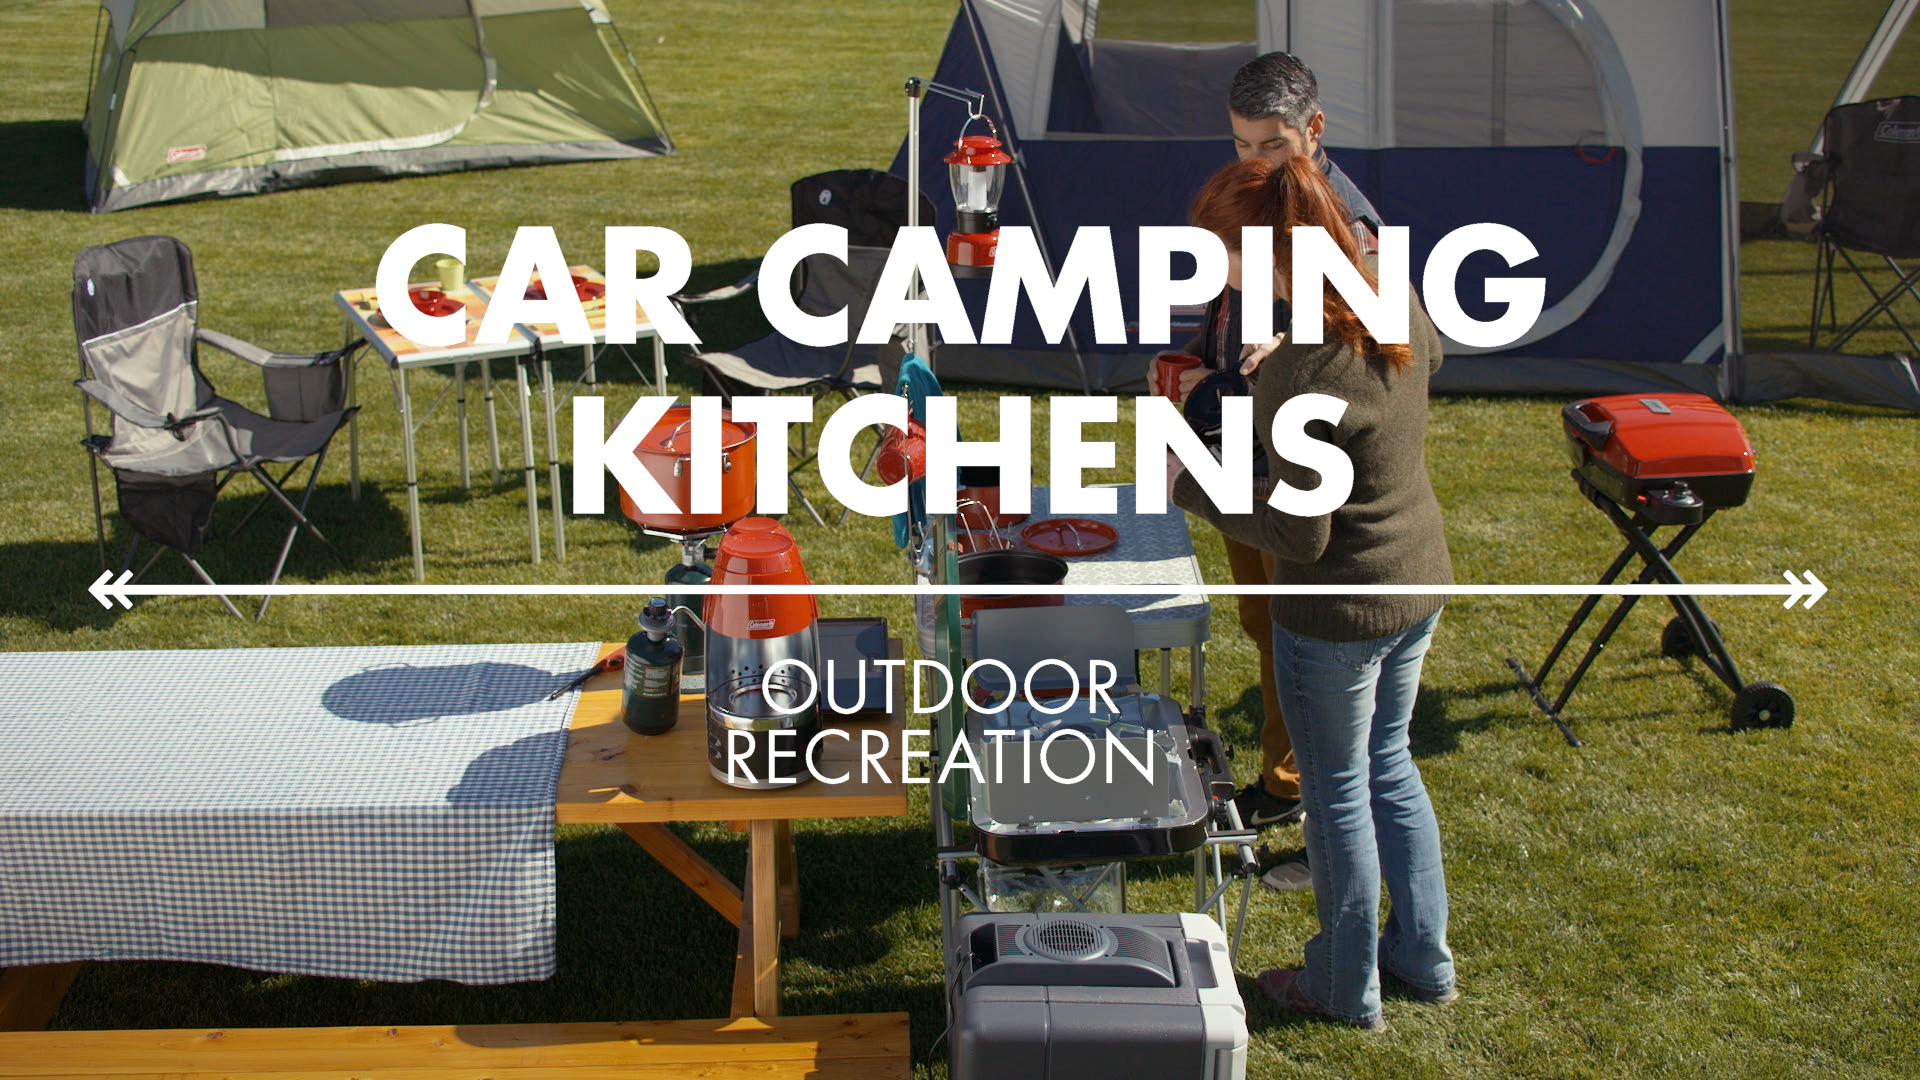 Car Camping Kitchen Gear from Coleman